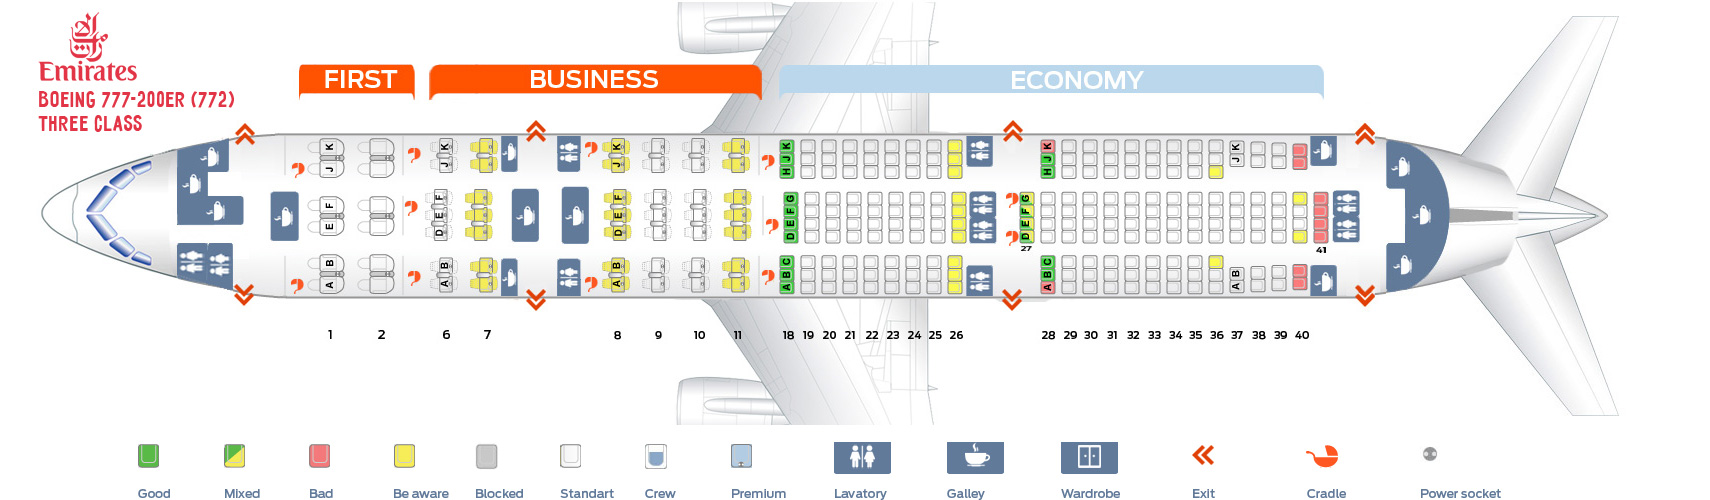 Marvelous Seat Map Boeing 777 200 Emirates Best Seats In The Plane Ocoug Best Dining Table And Chair Ideas Images Ocougorg